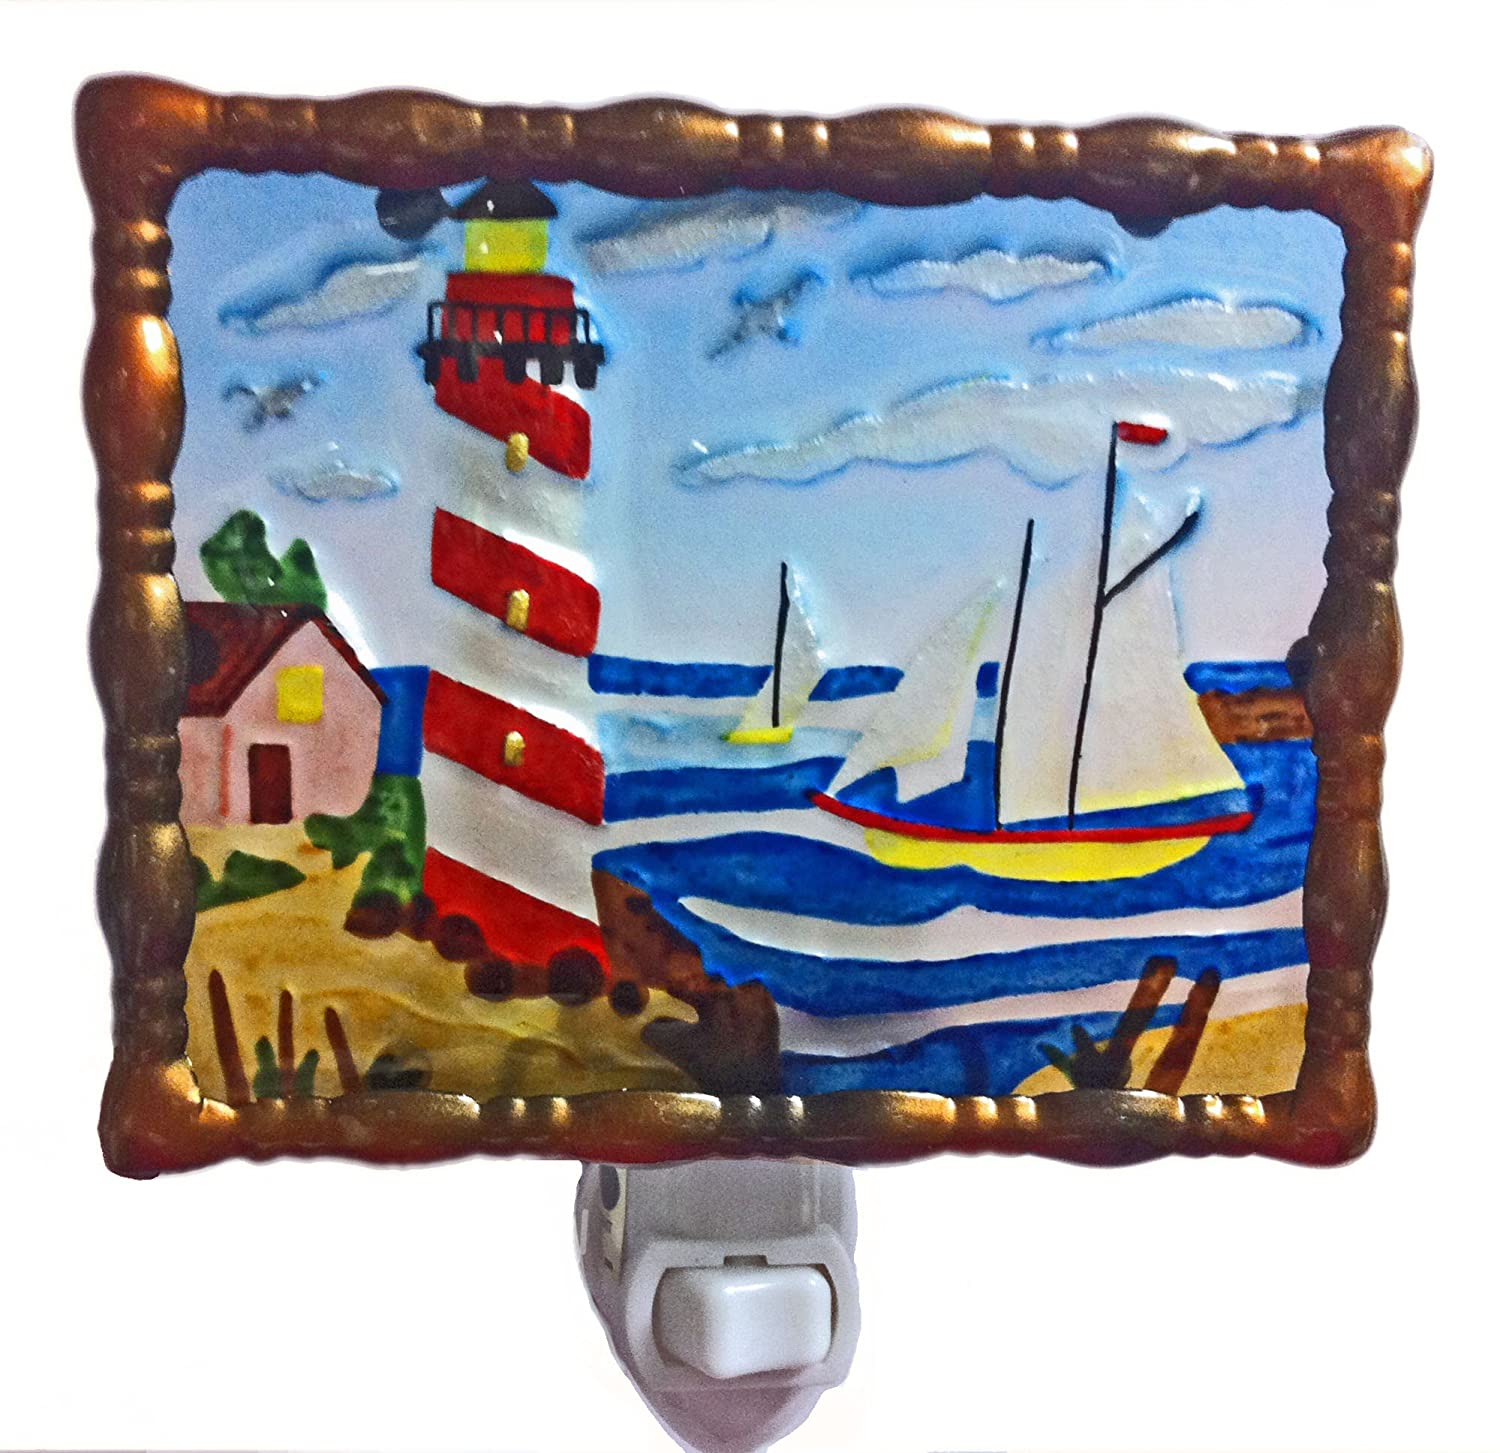 Continental Art Center NL9901 Hand Painted Glass with Night Light House, 5.2 by 5.6 by 1.6-Inch